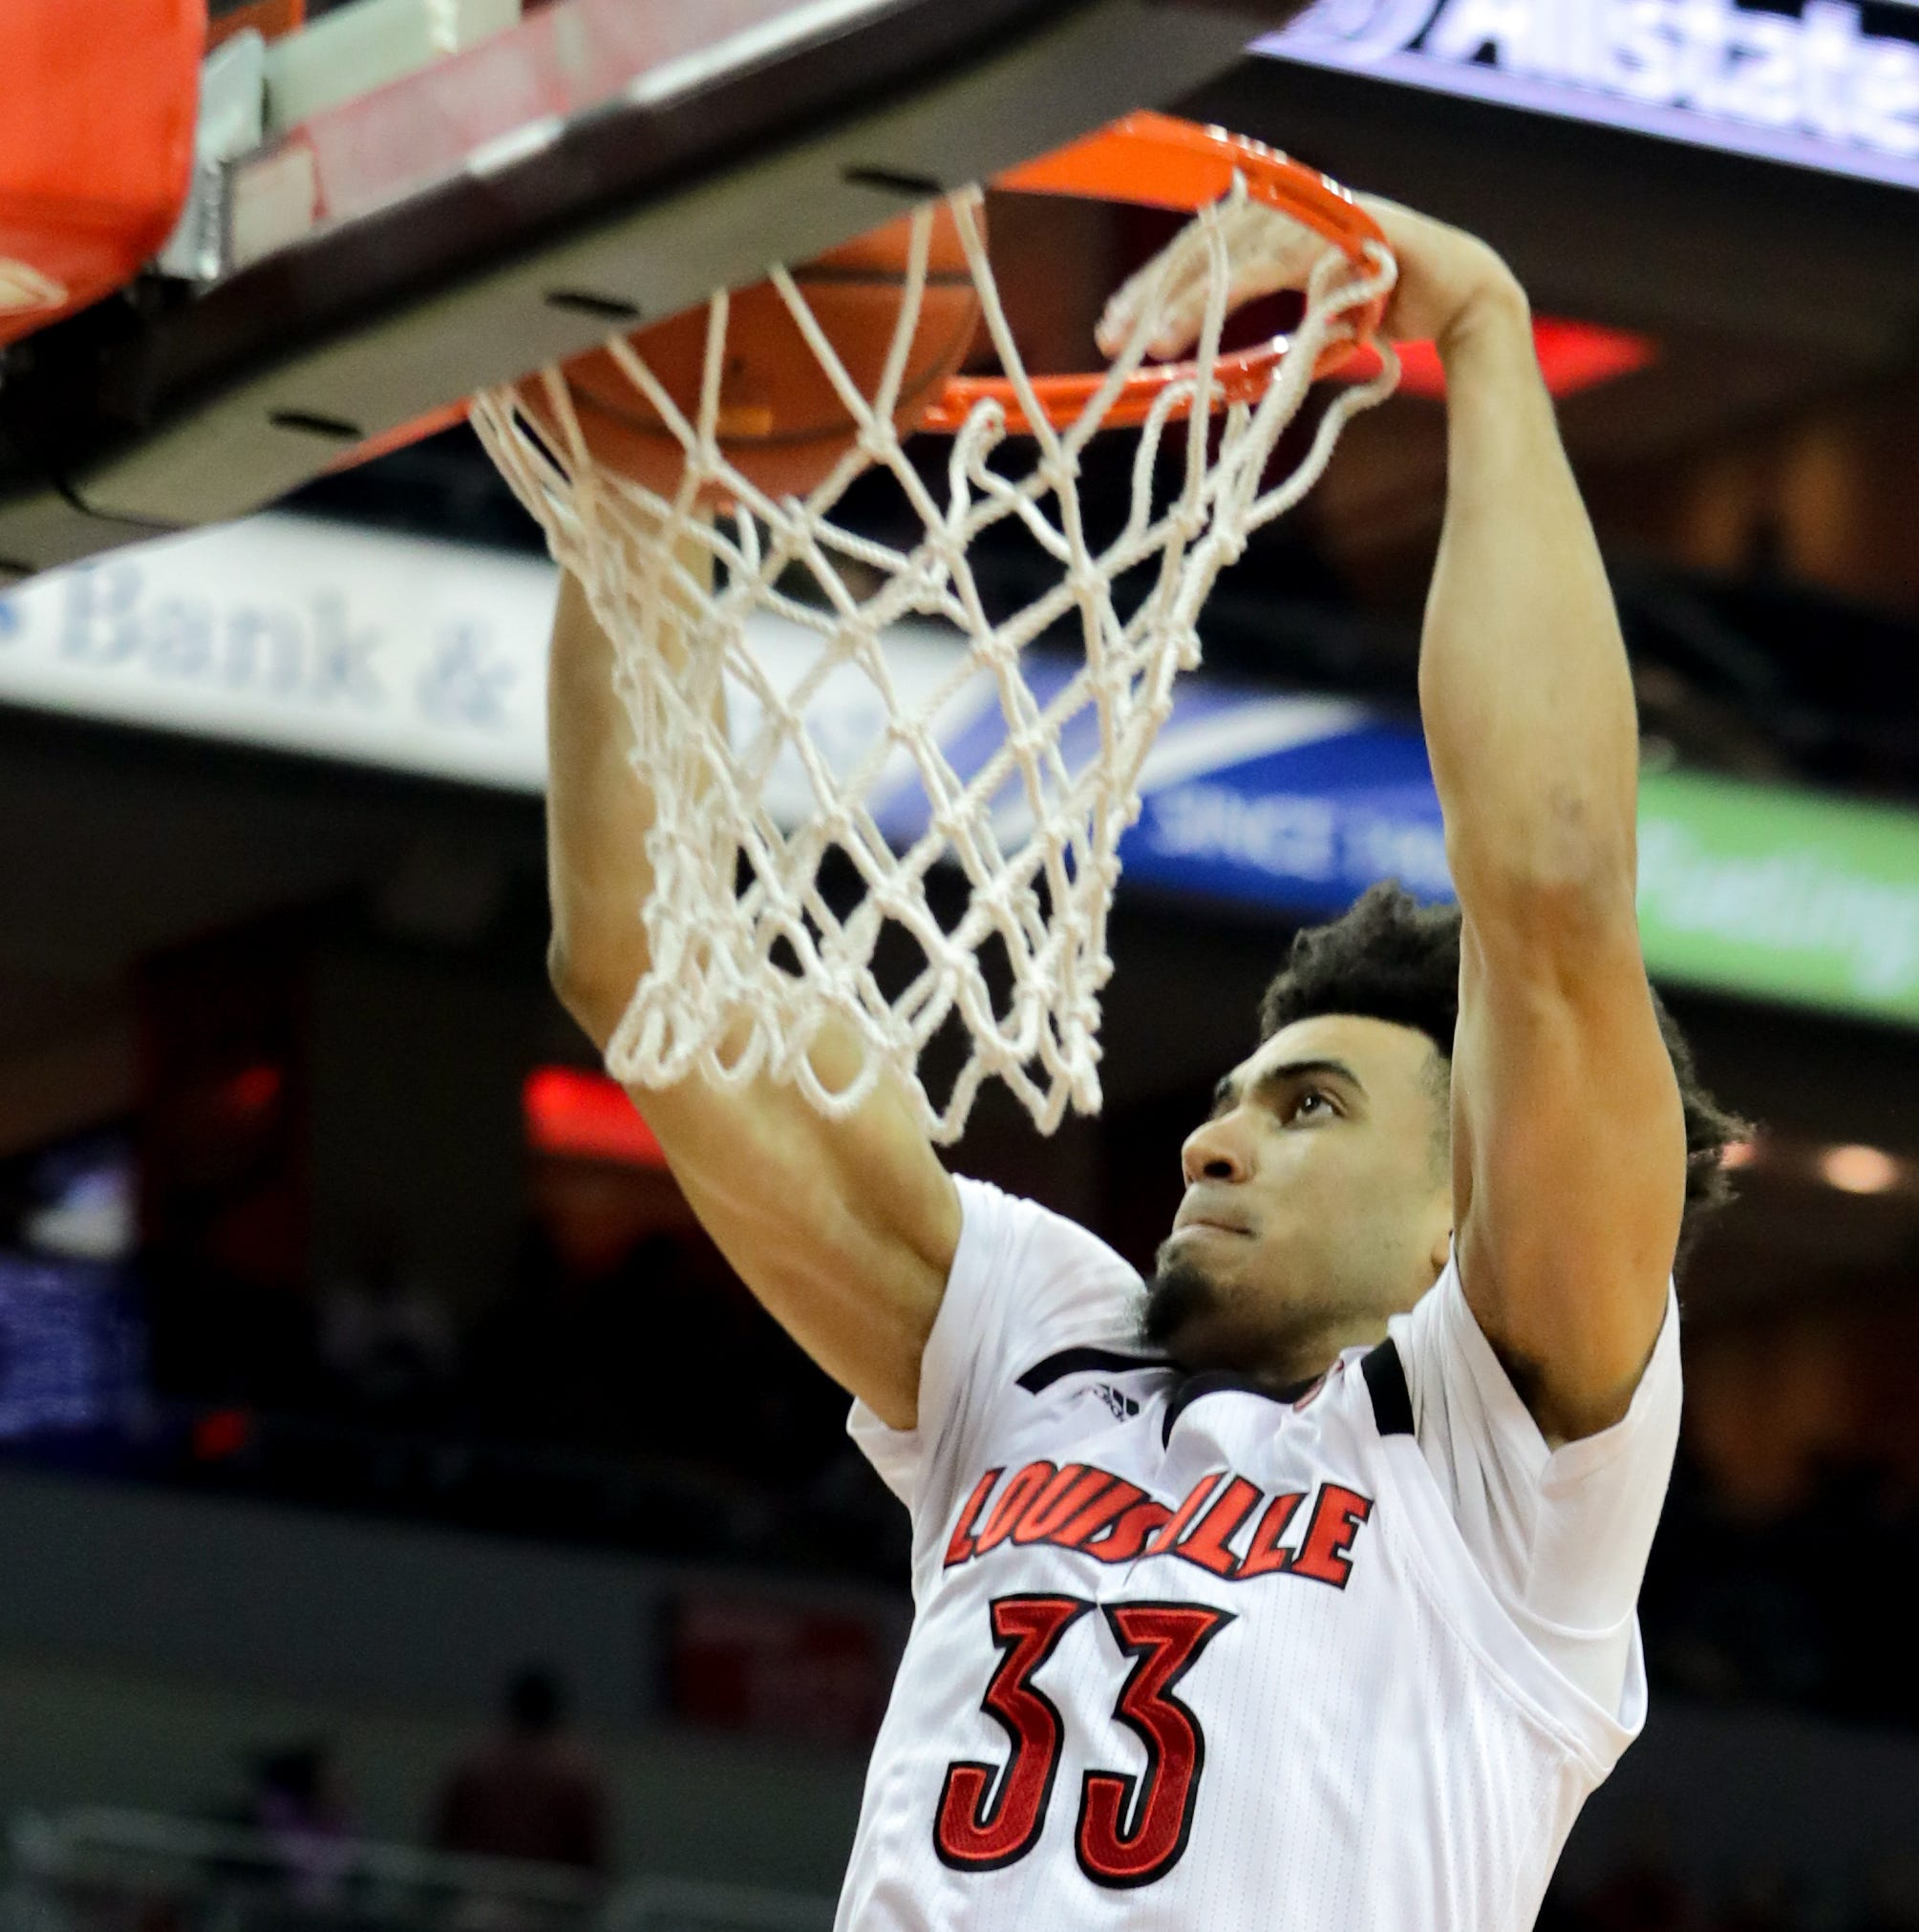 Key takeaways from Louisville basketball's win over Lipscomb